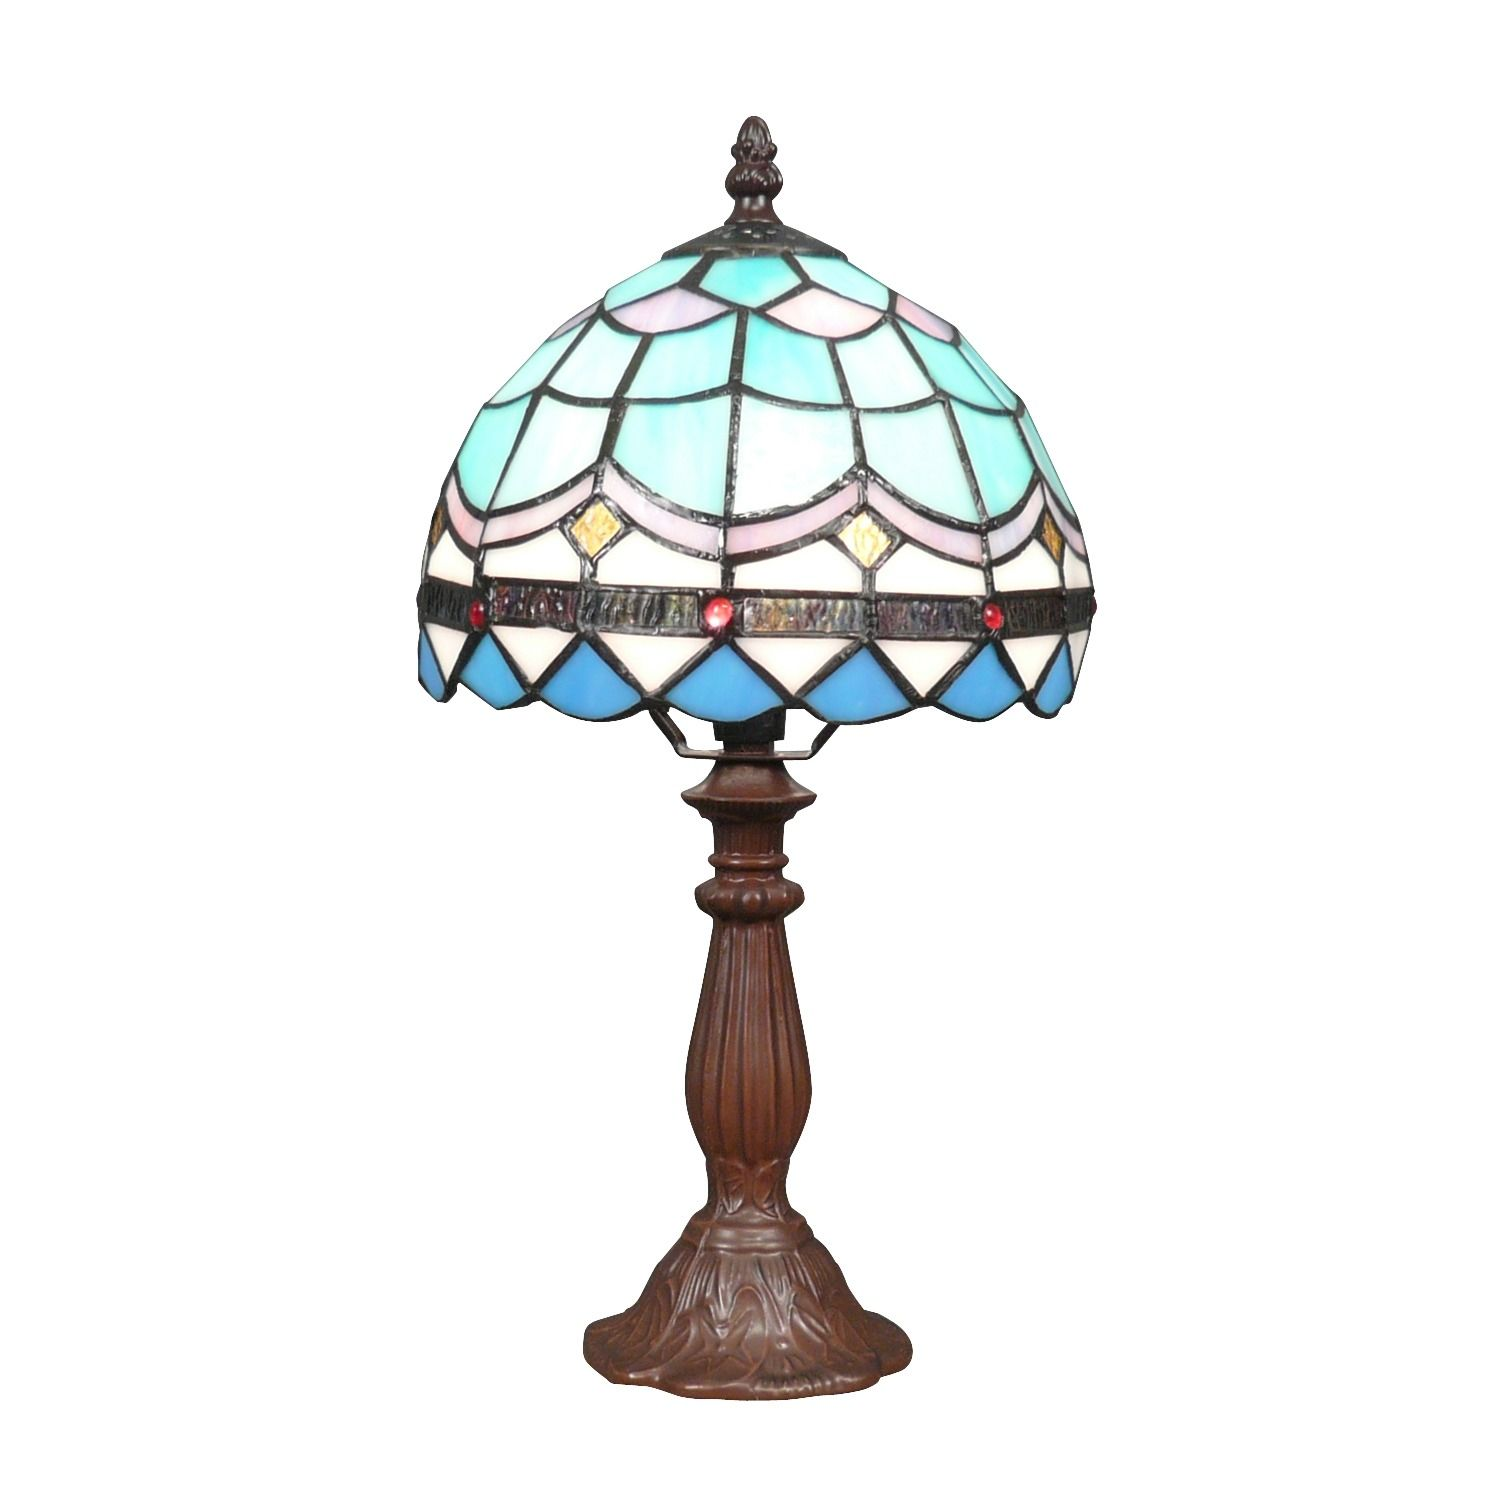 Mediterranean Blue Tiffany Lamp Tiffany Lamps Stained Glass Lamps Art Deco Lighting